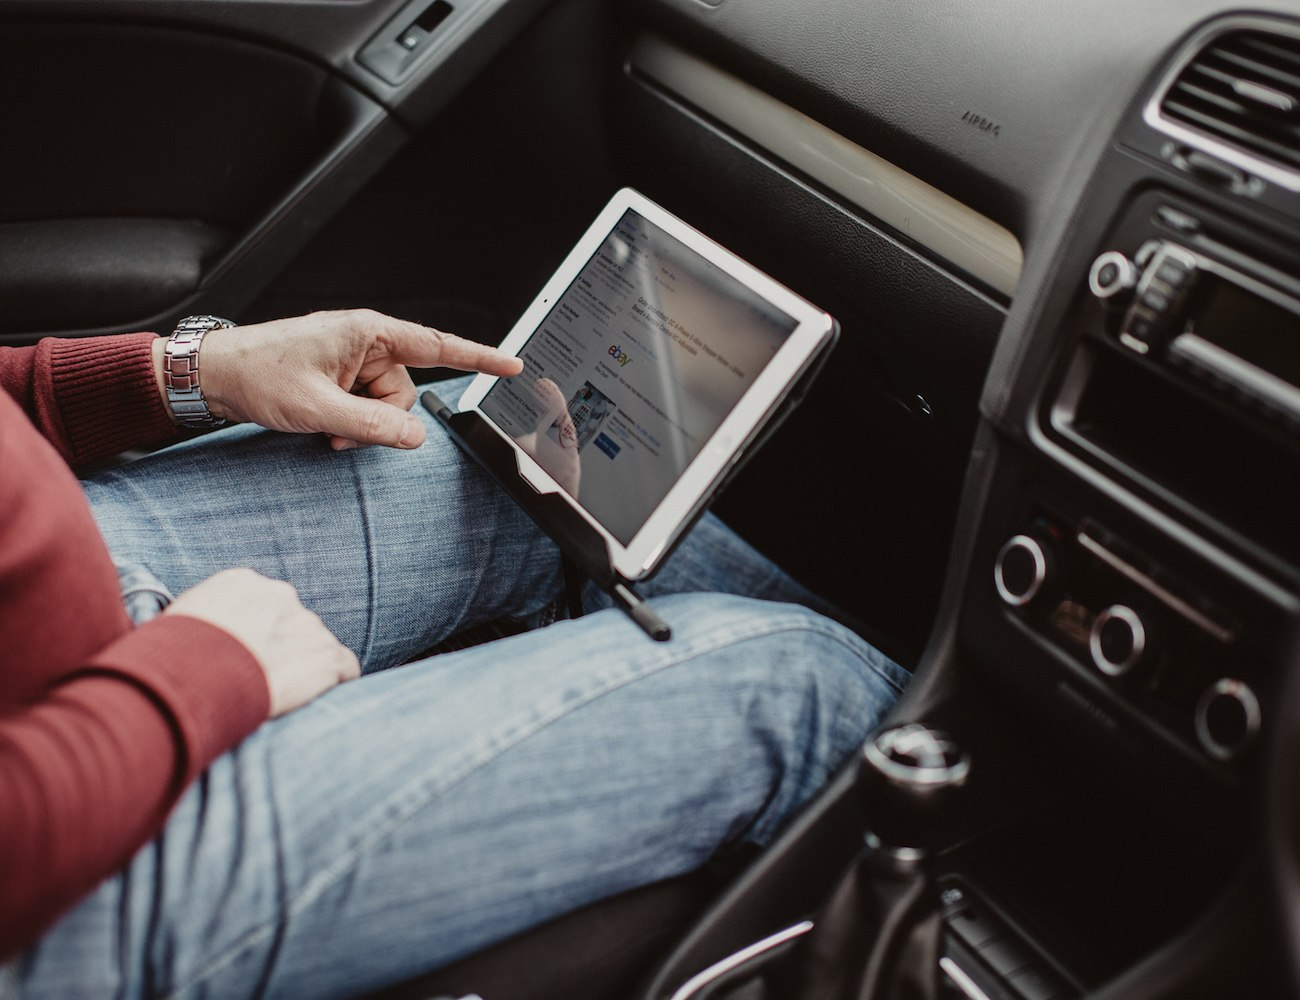 The T iPad and Tablet Mount-Holder